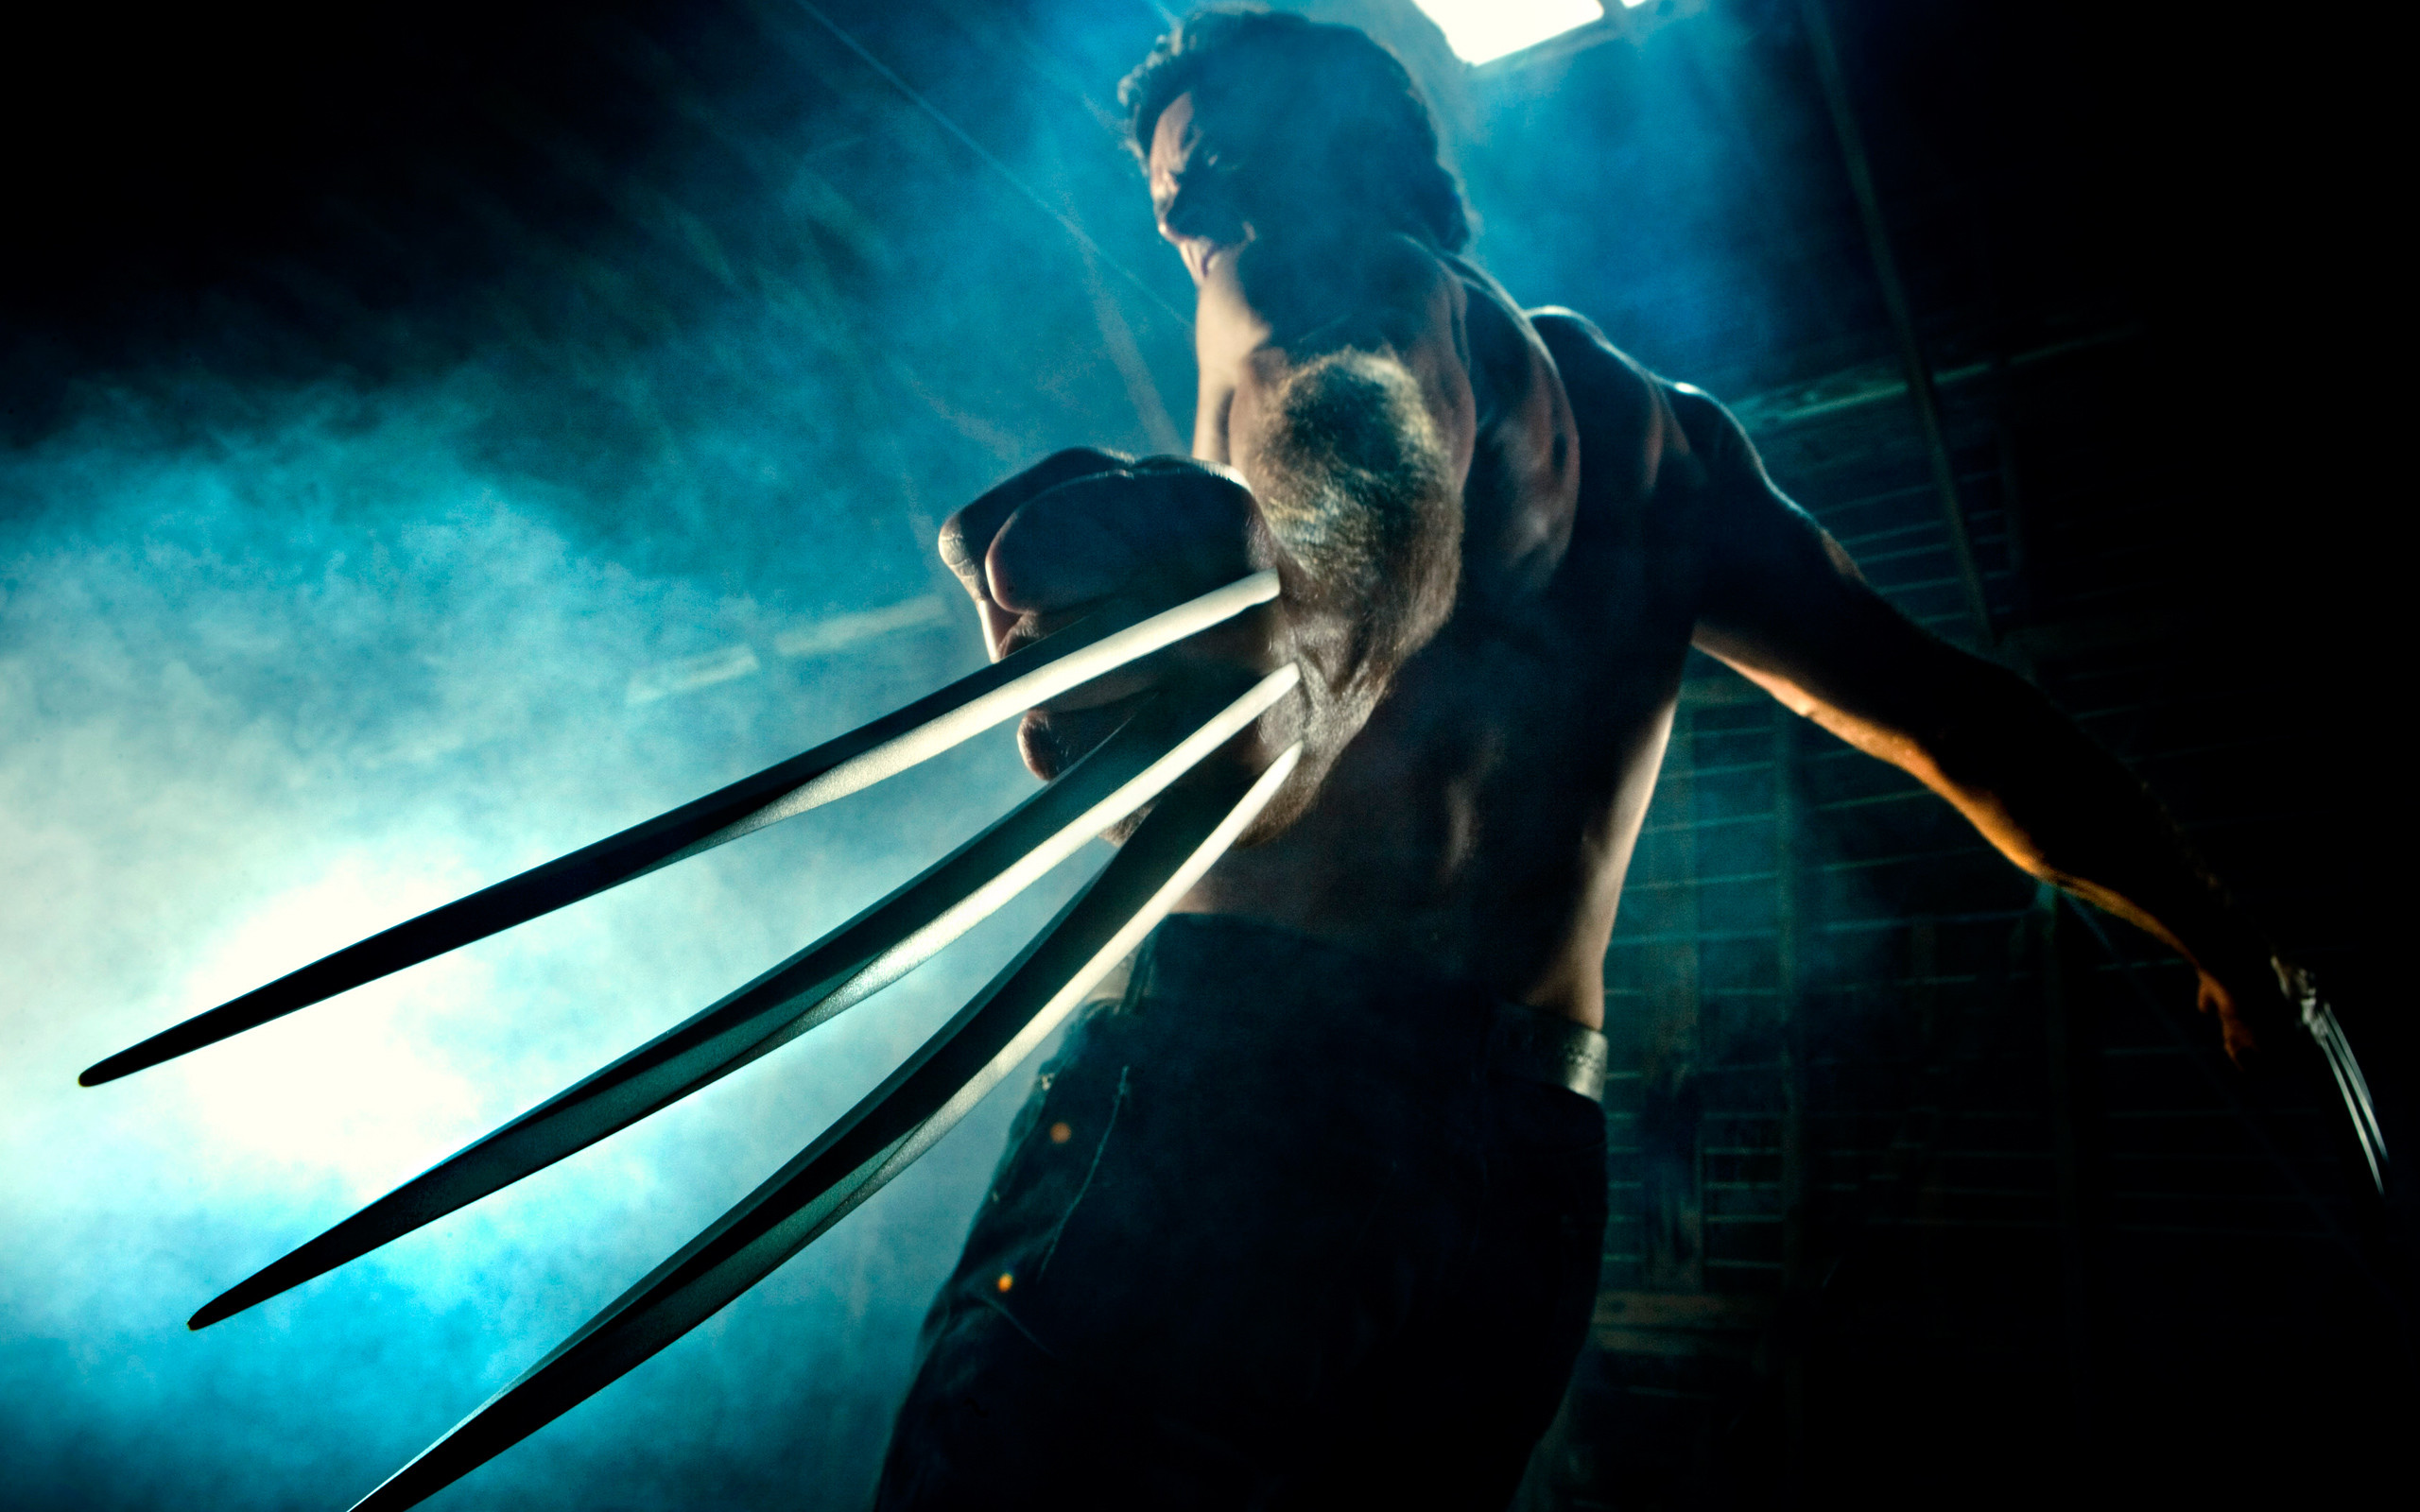 2560x1600 Wolverine Wallpapers Windows Desktop Wallpapers | Movie Wallpapers | Windows  10 Wallpapers and app